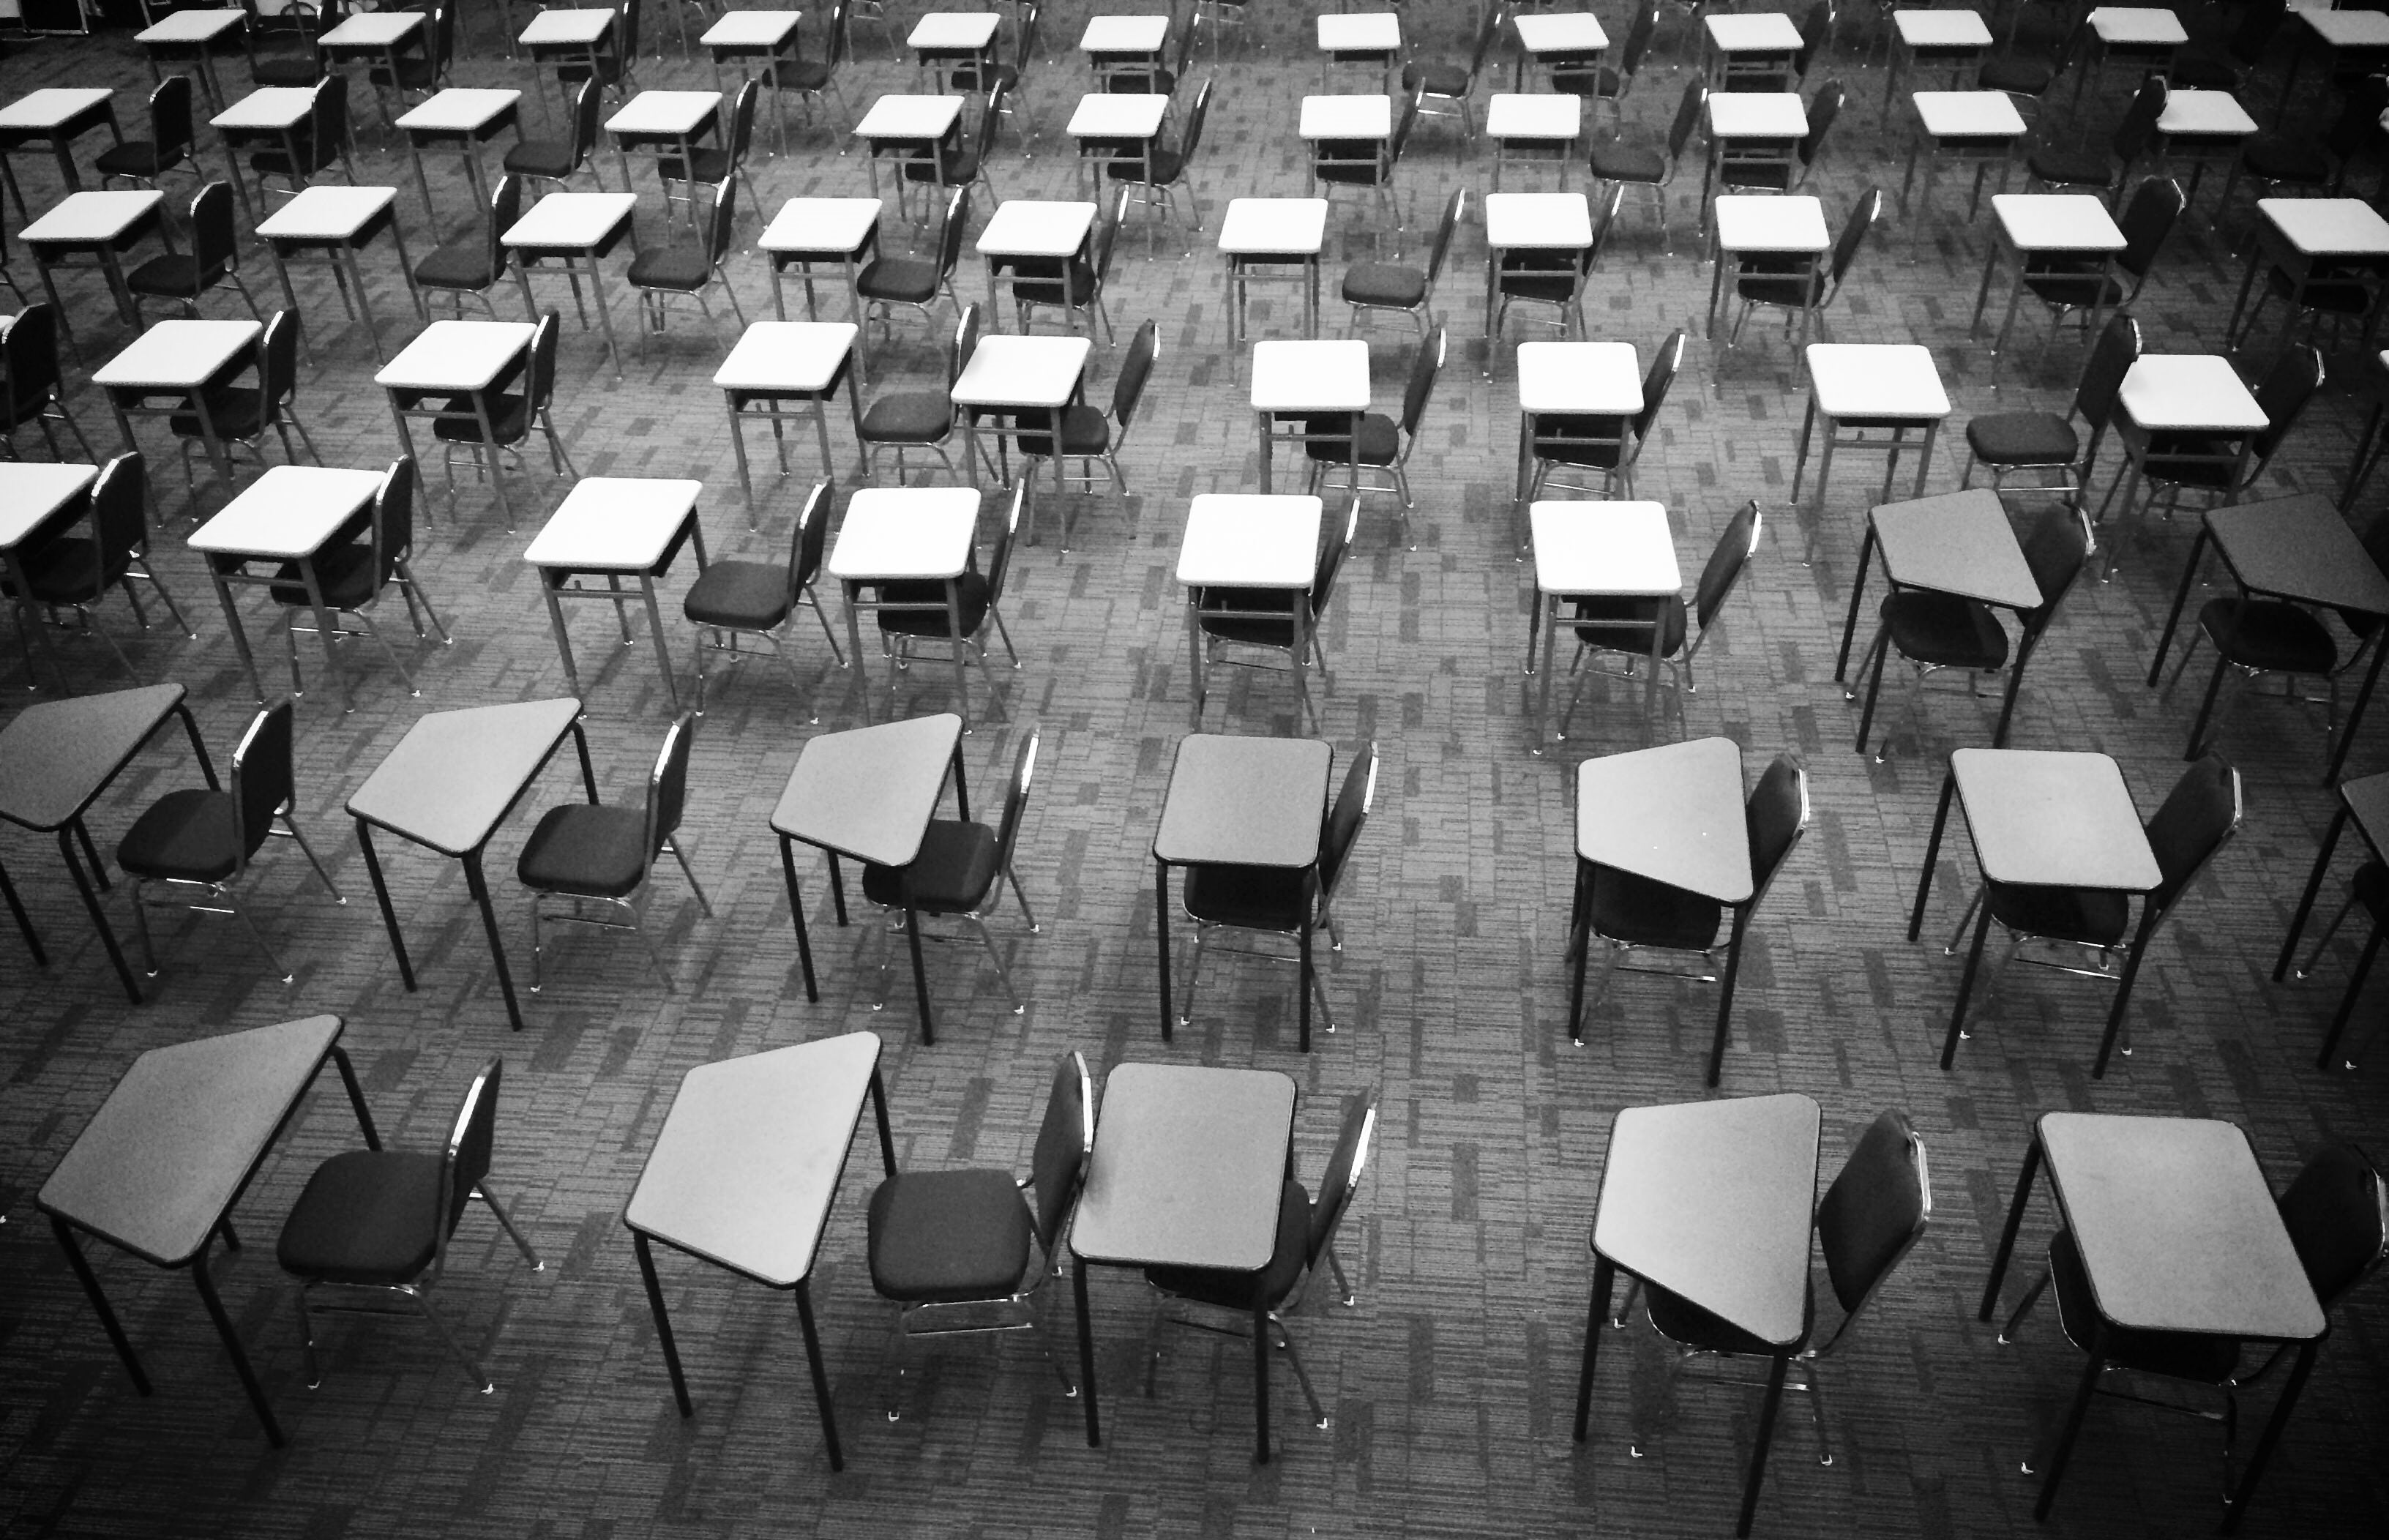 Exam room ready for an Oxford or Cambridge Admissions test, black and White